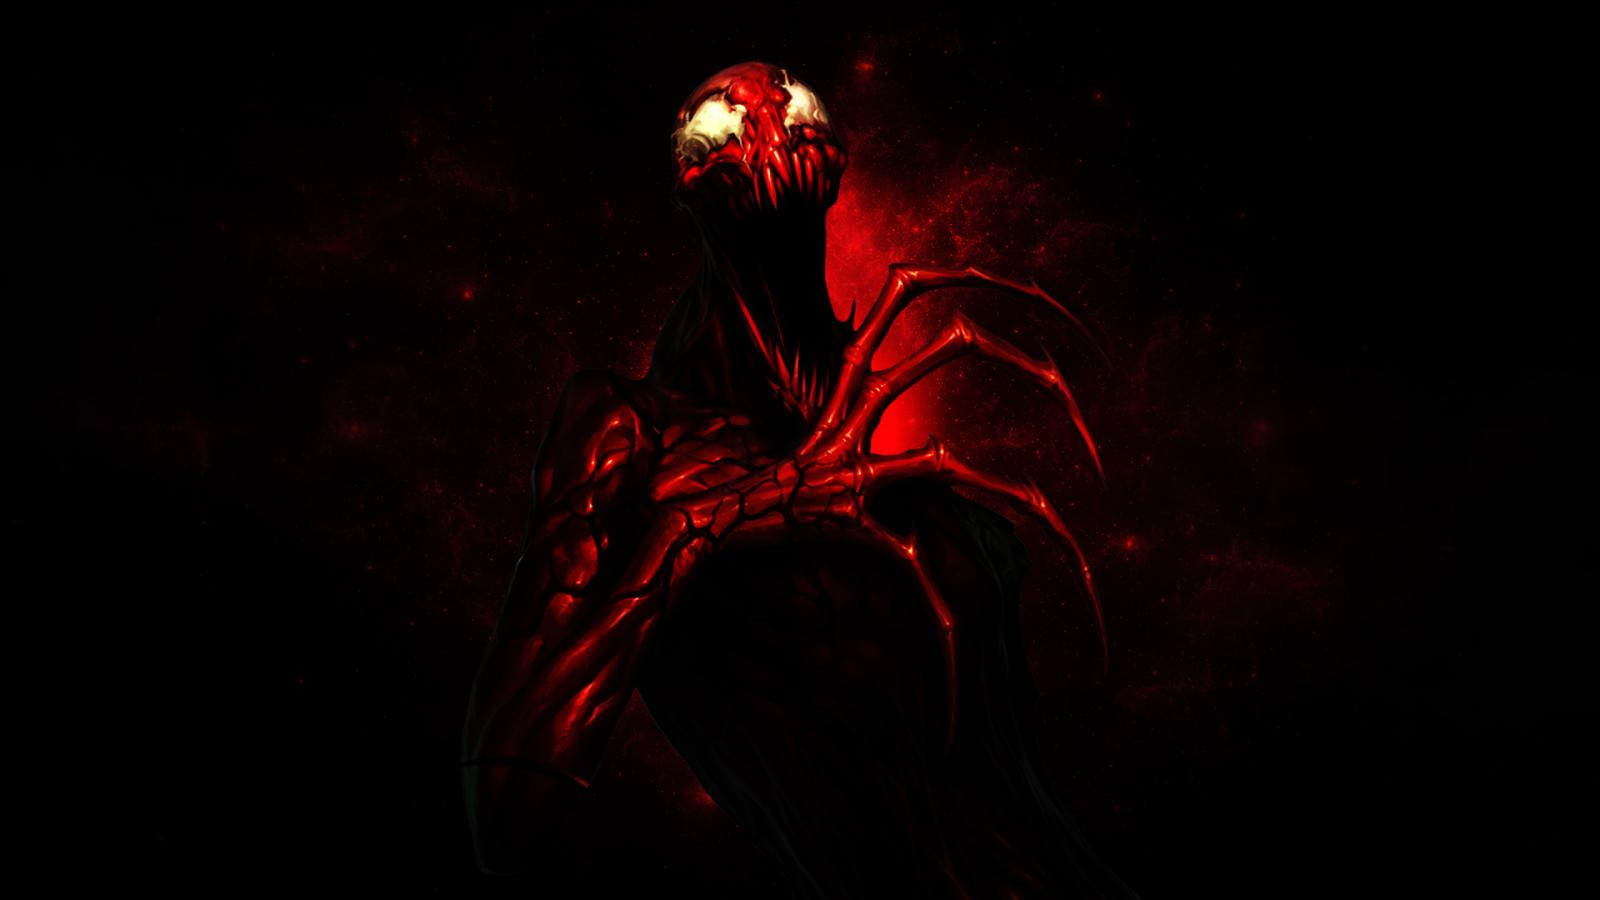 Image Gallery of Cool Carnage Wallpapers